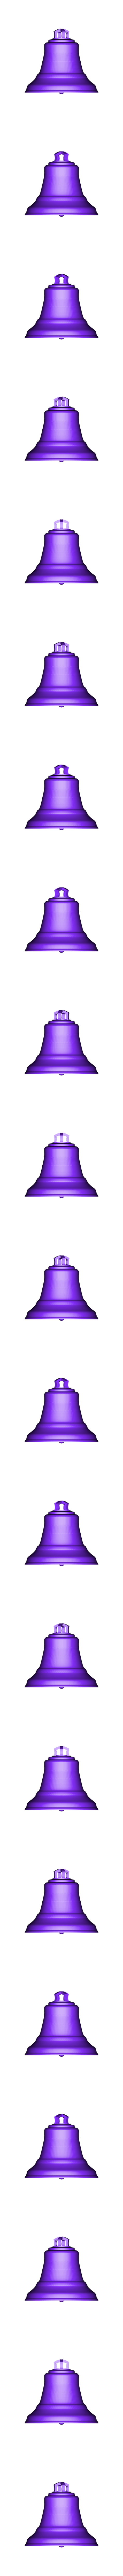 cloche.stl Download STL file Bell on pedestal • 3D printable object, remus59